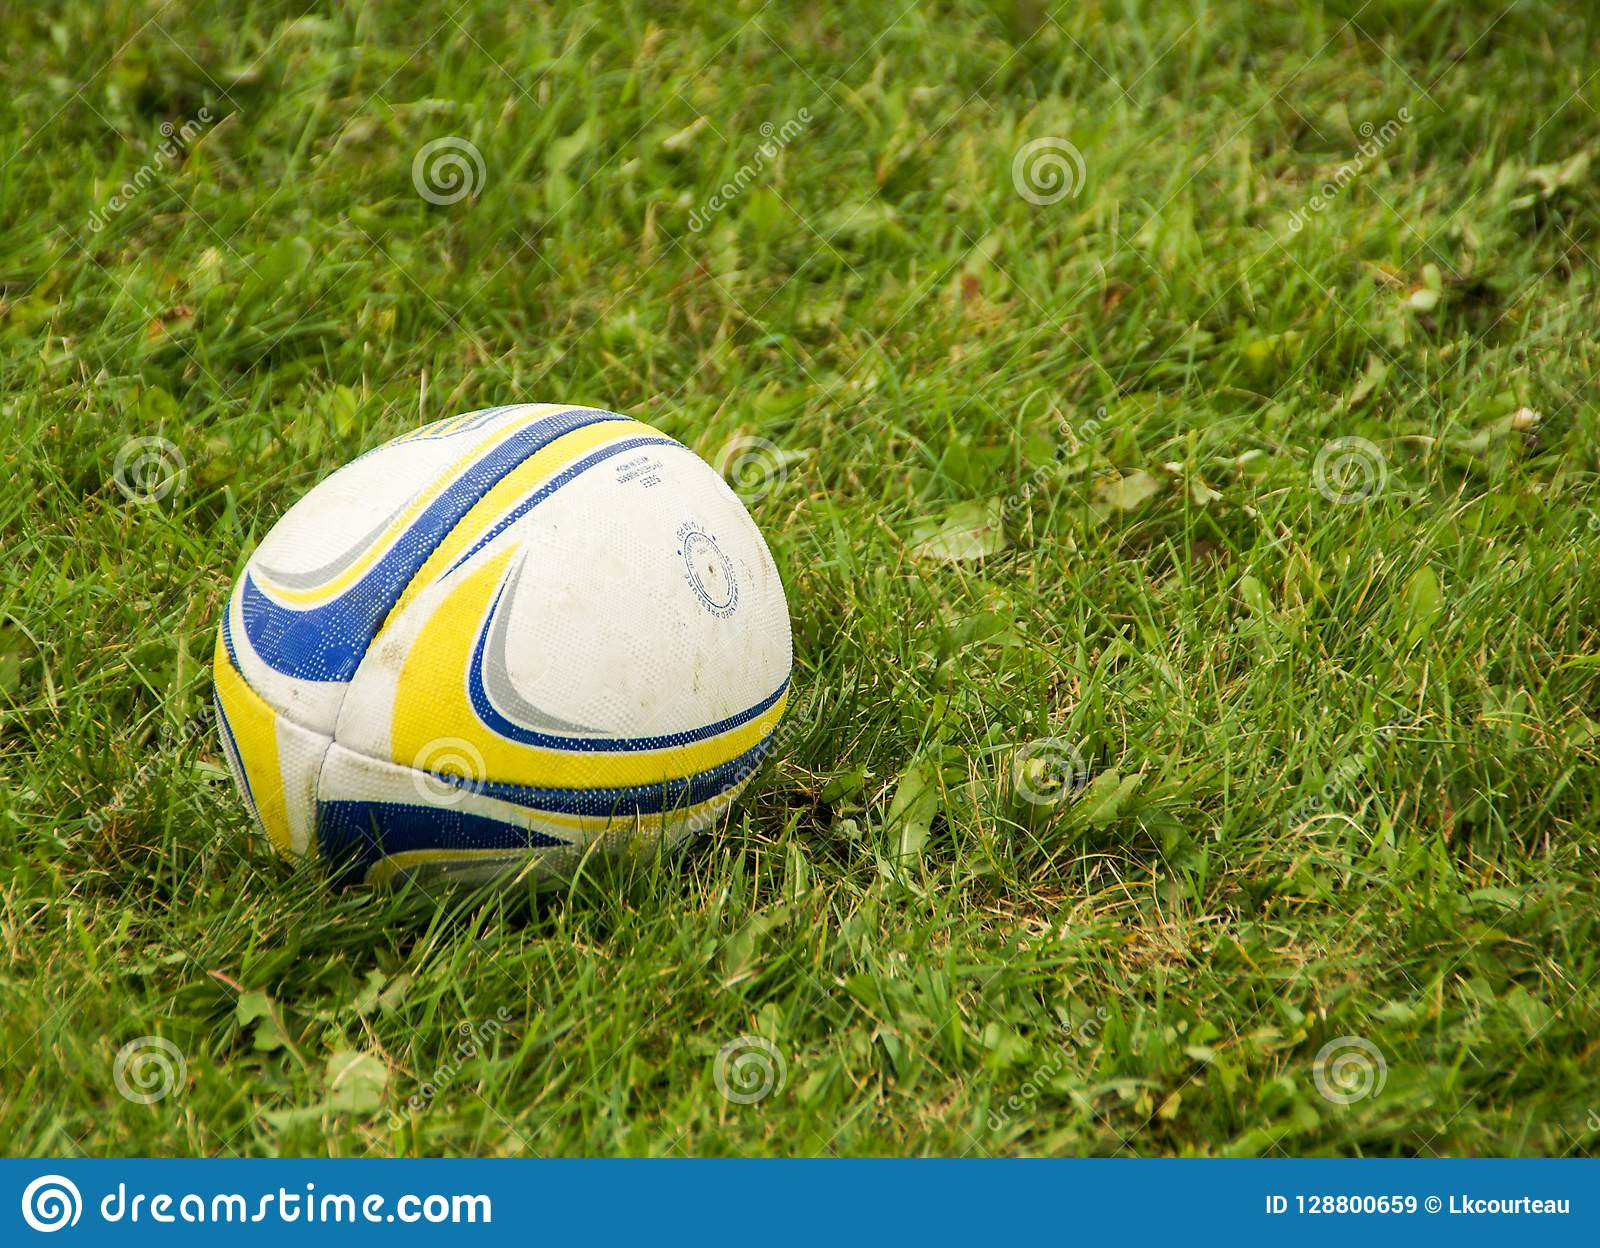 Blue, yellow, and white rugby ball sitting in green grass in Superior Wisconsin